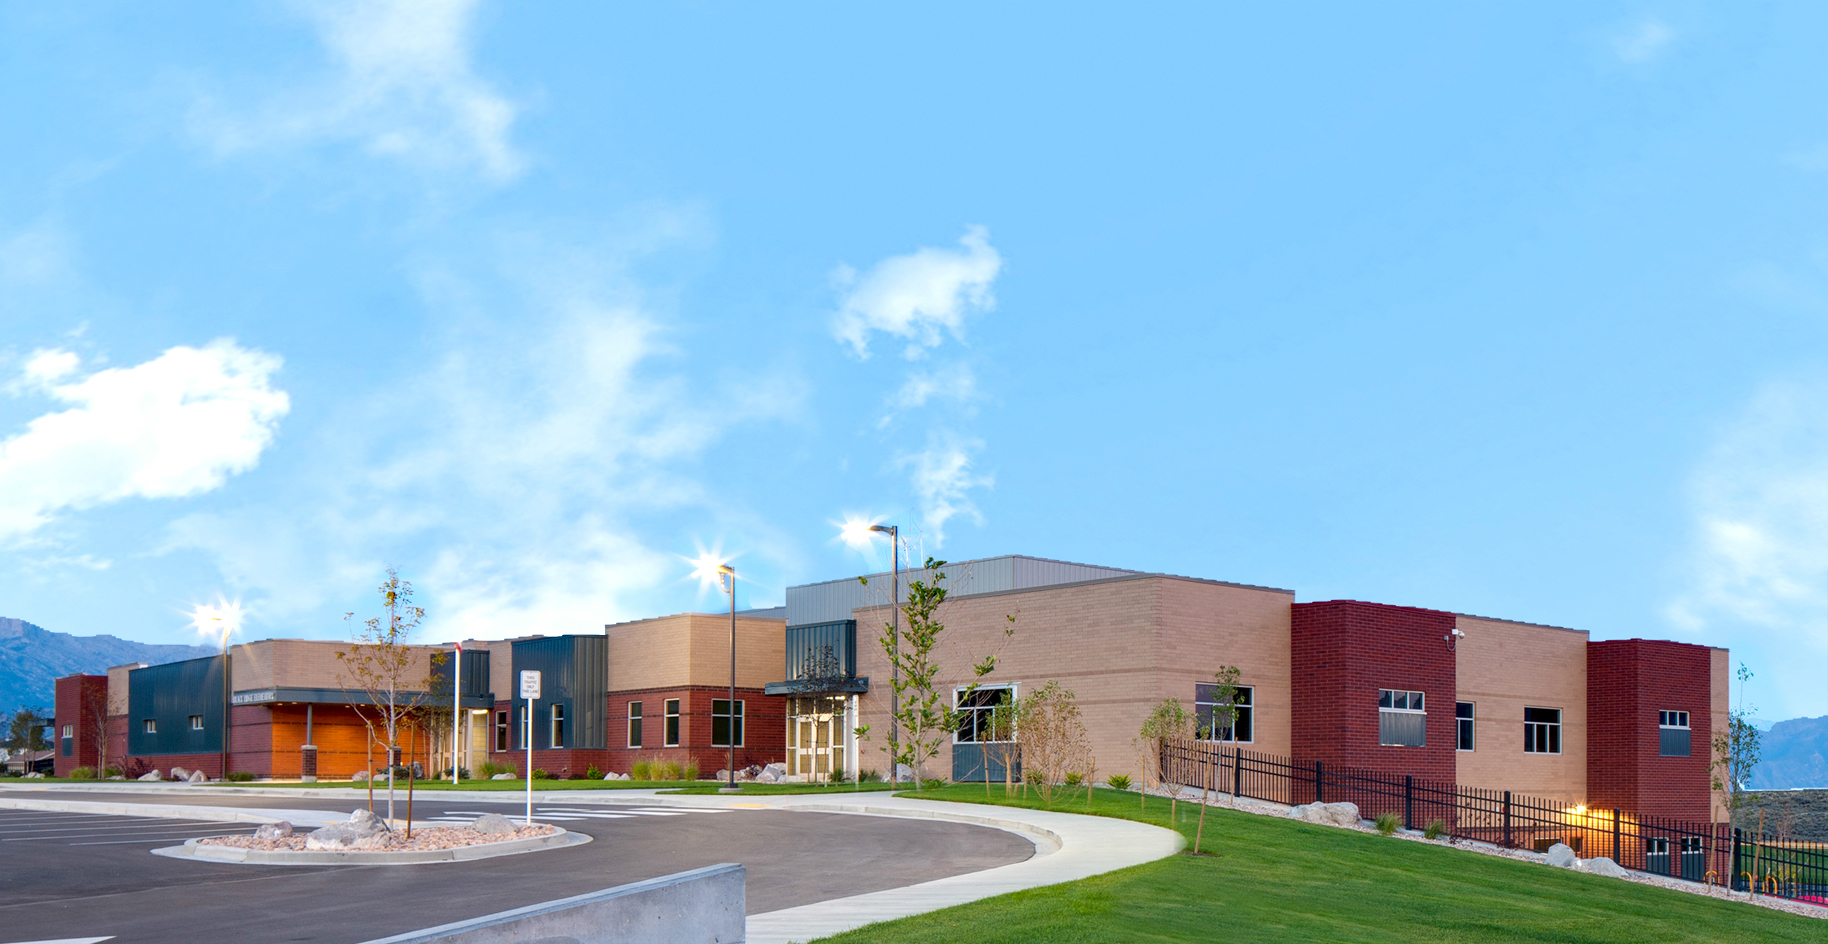 Rendering of Grovecrest Elementary